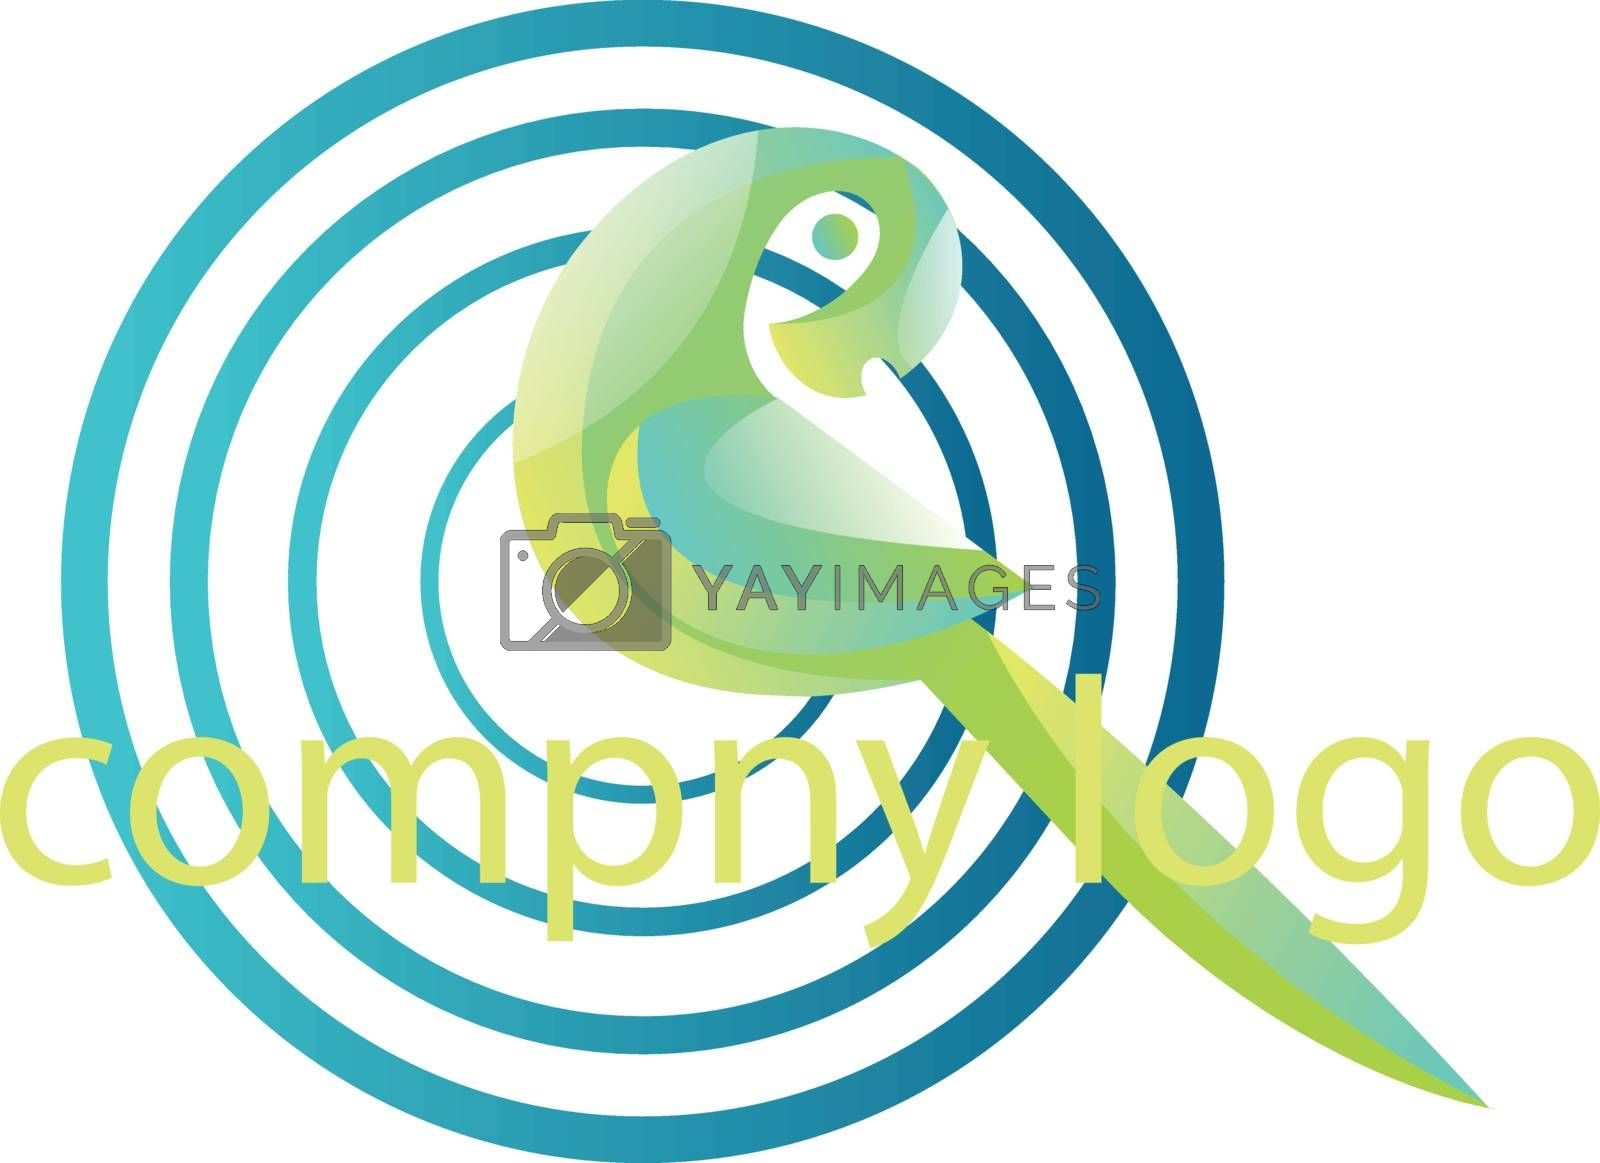 Royalty free image of Green parrot and blue circles vector logo illustration on a whit by Morphart